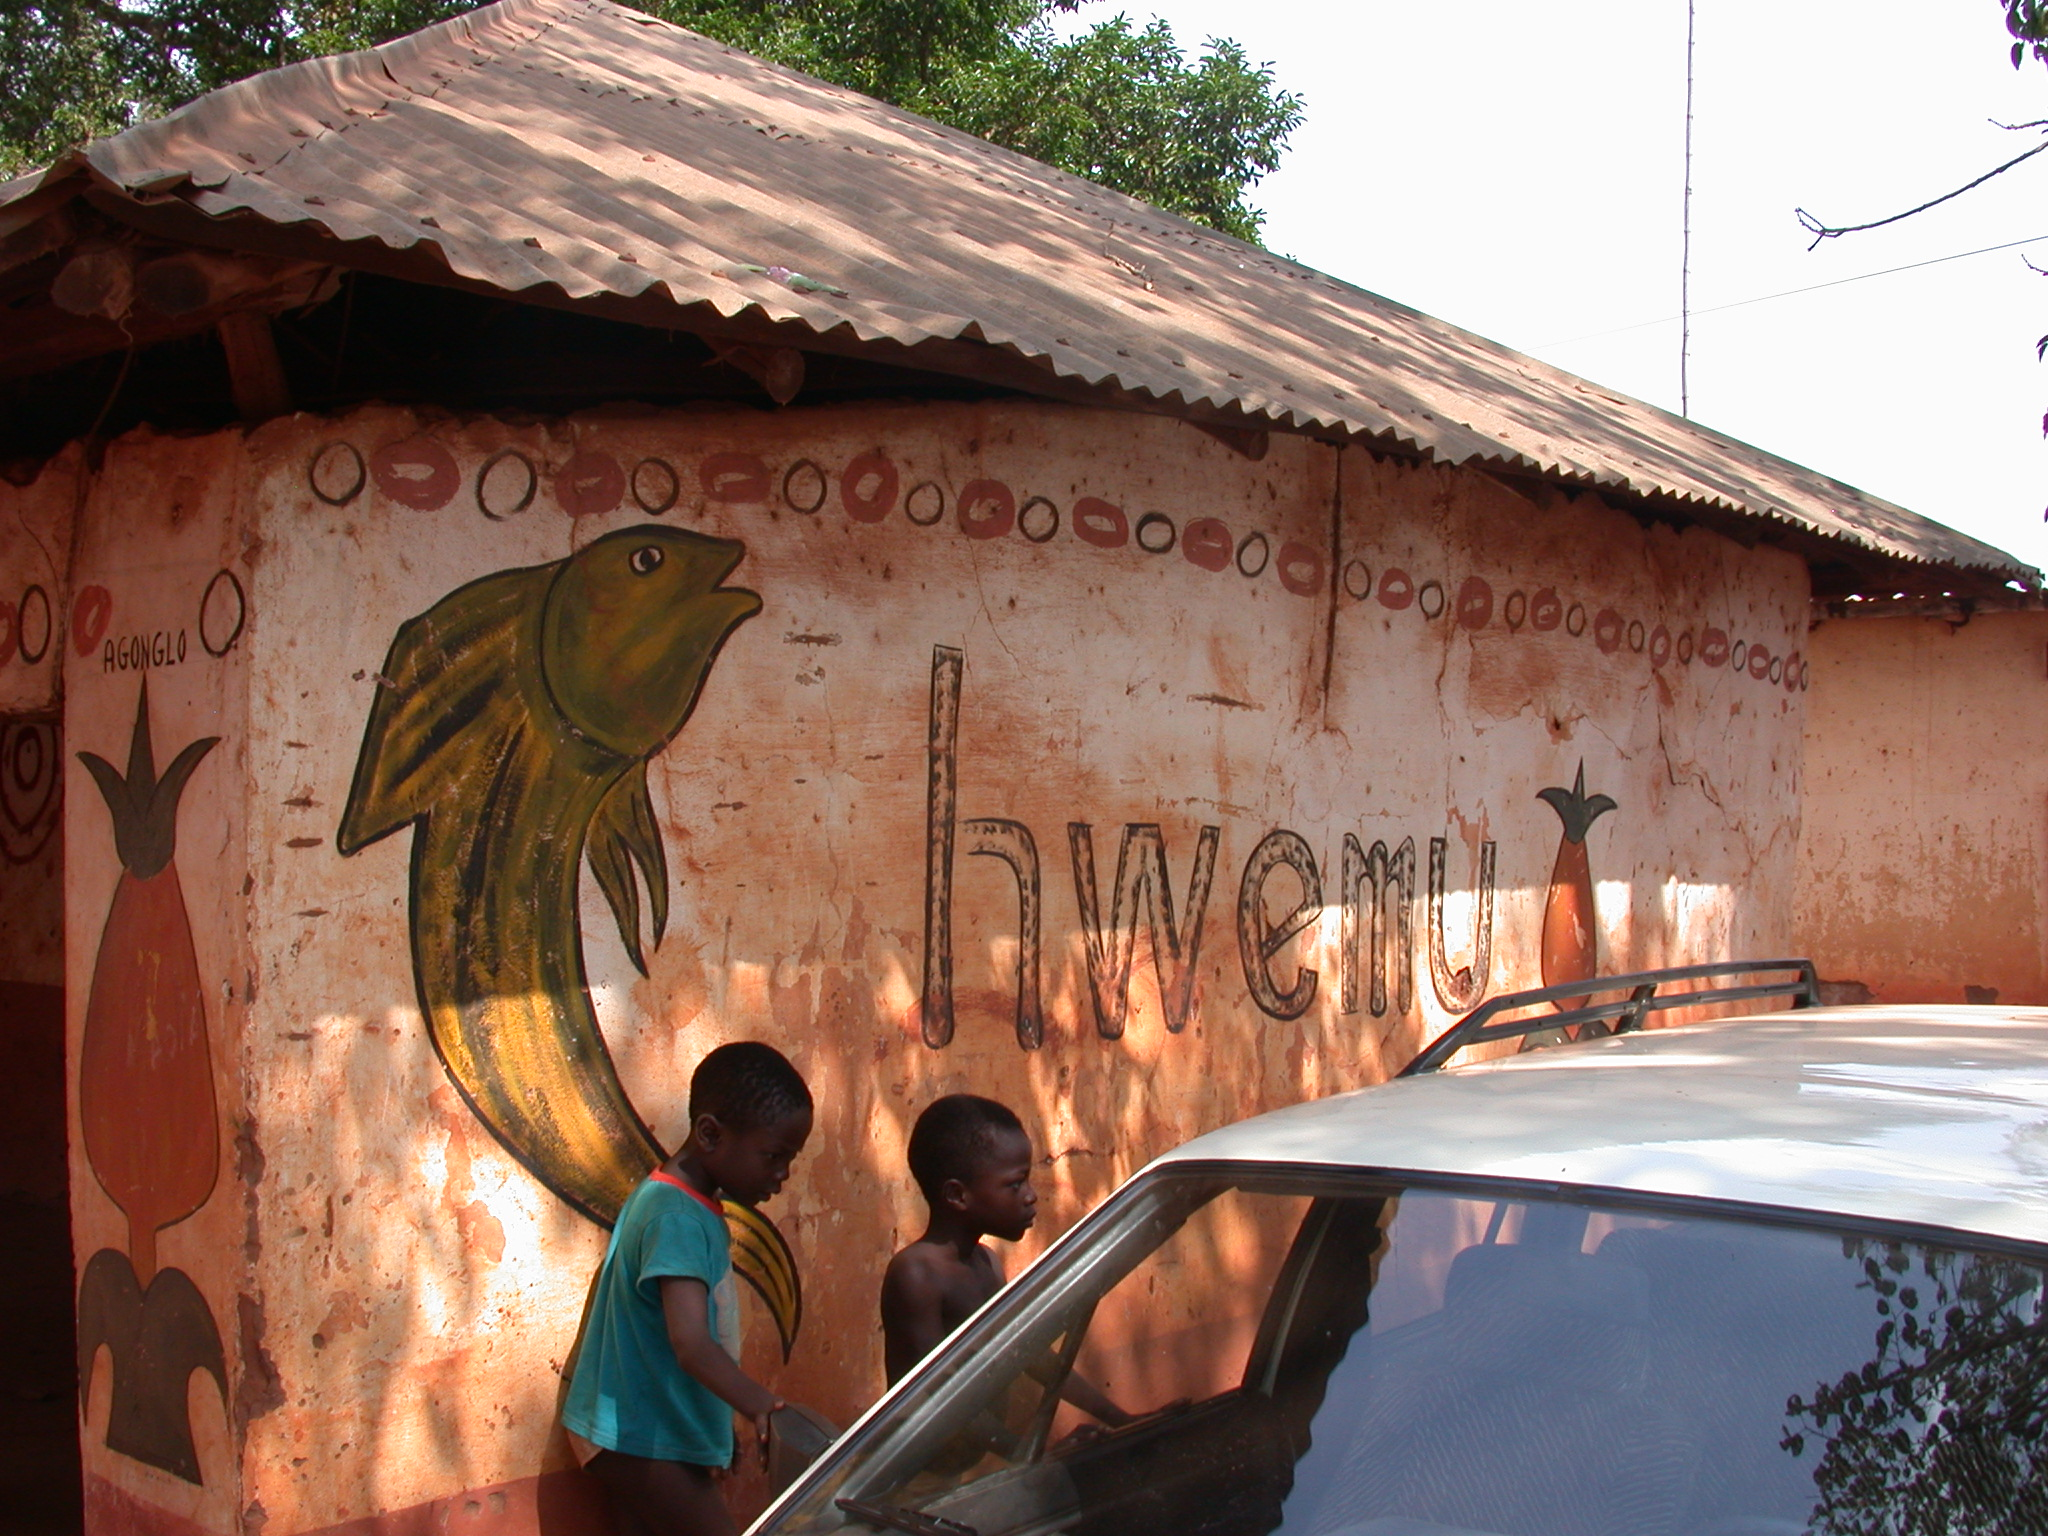 Agonglo Symbol and Alternate Spelling of Hwemu on Compound Wall, Houemou Agonglo Temple, Abomey, Benin